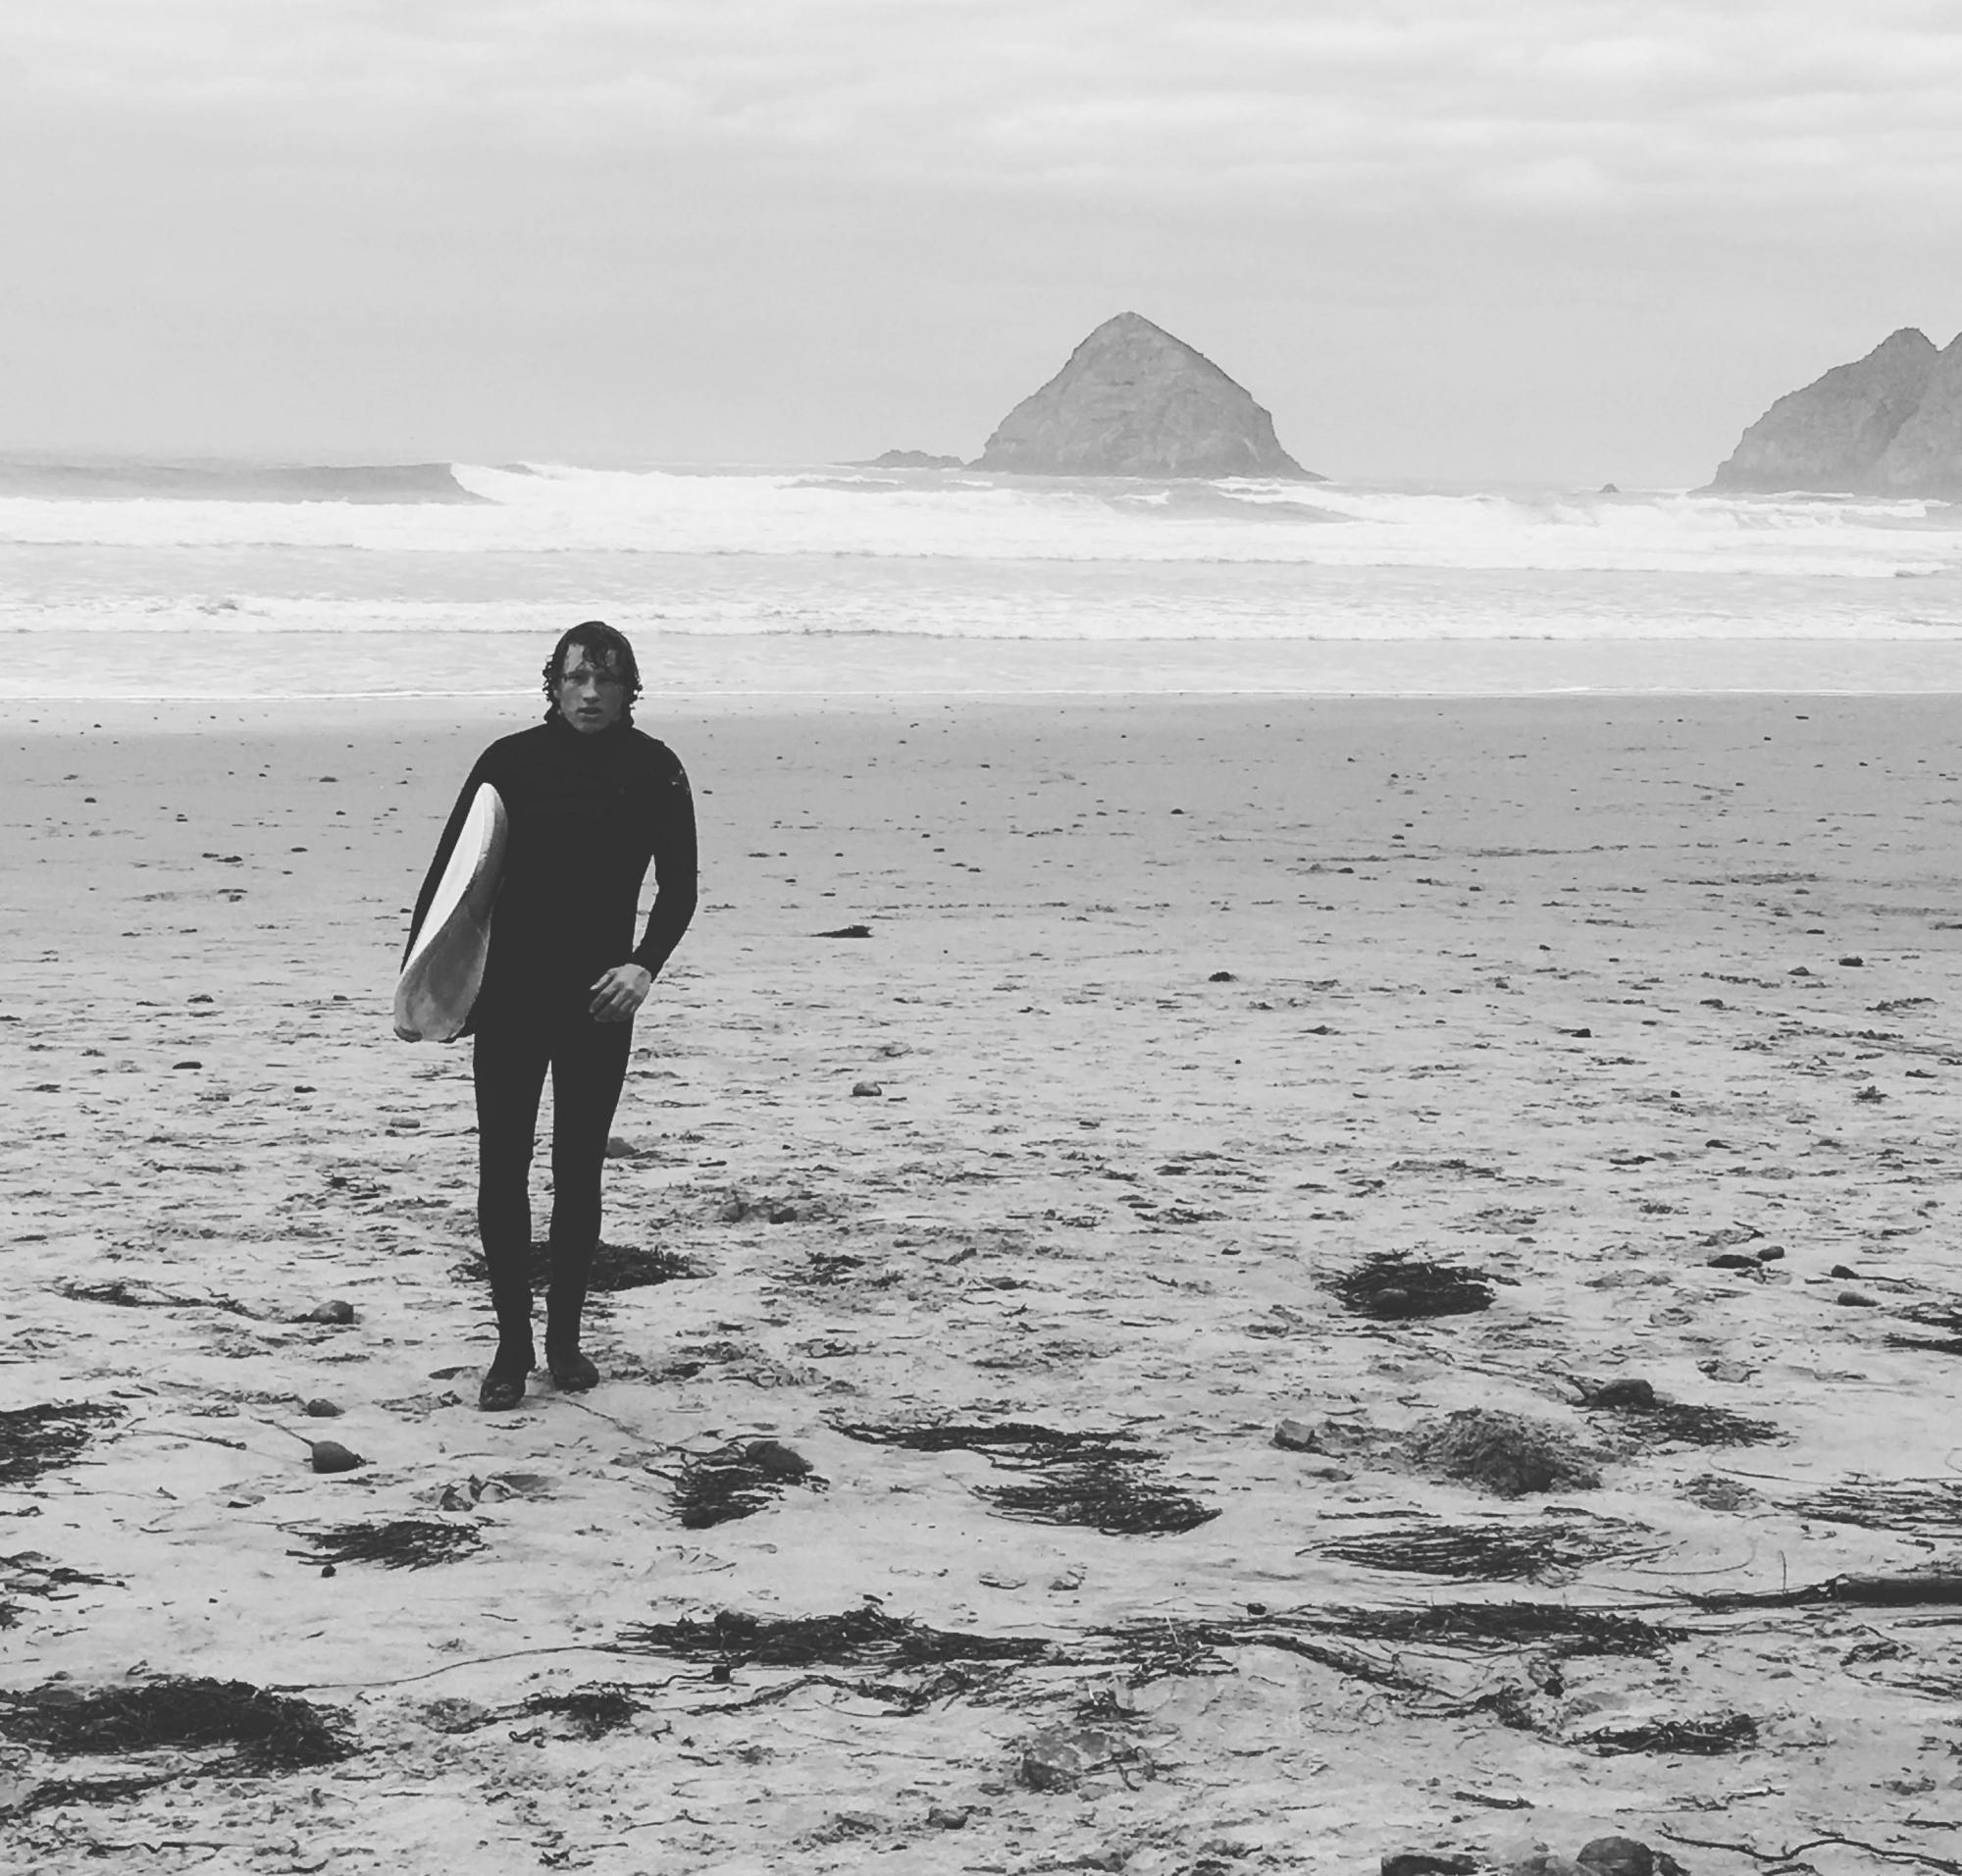 Drea Hanks, Outdoor Pursuits Cadre, surfing on the Oregon Coast